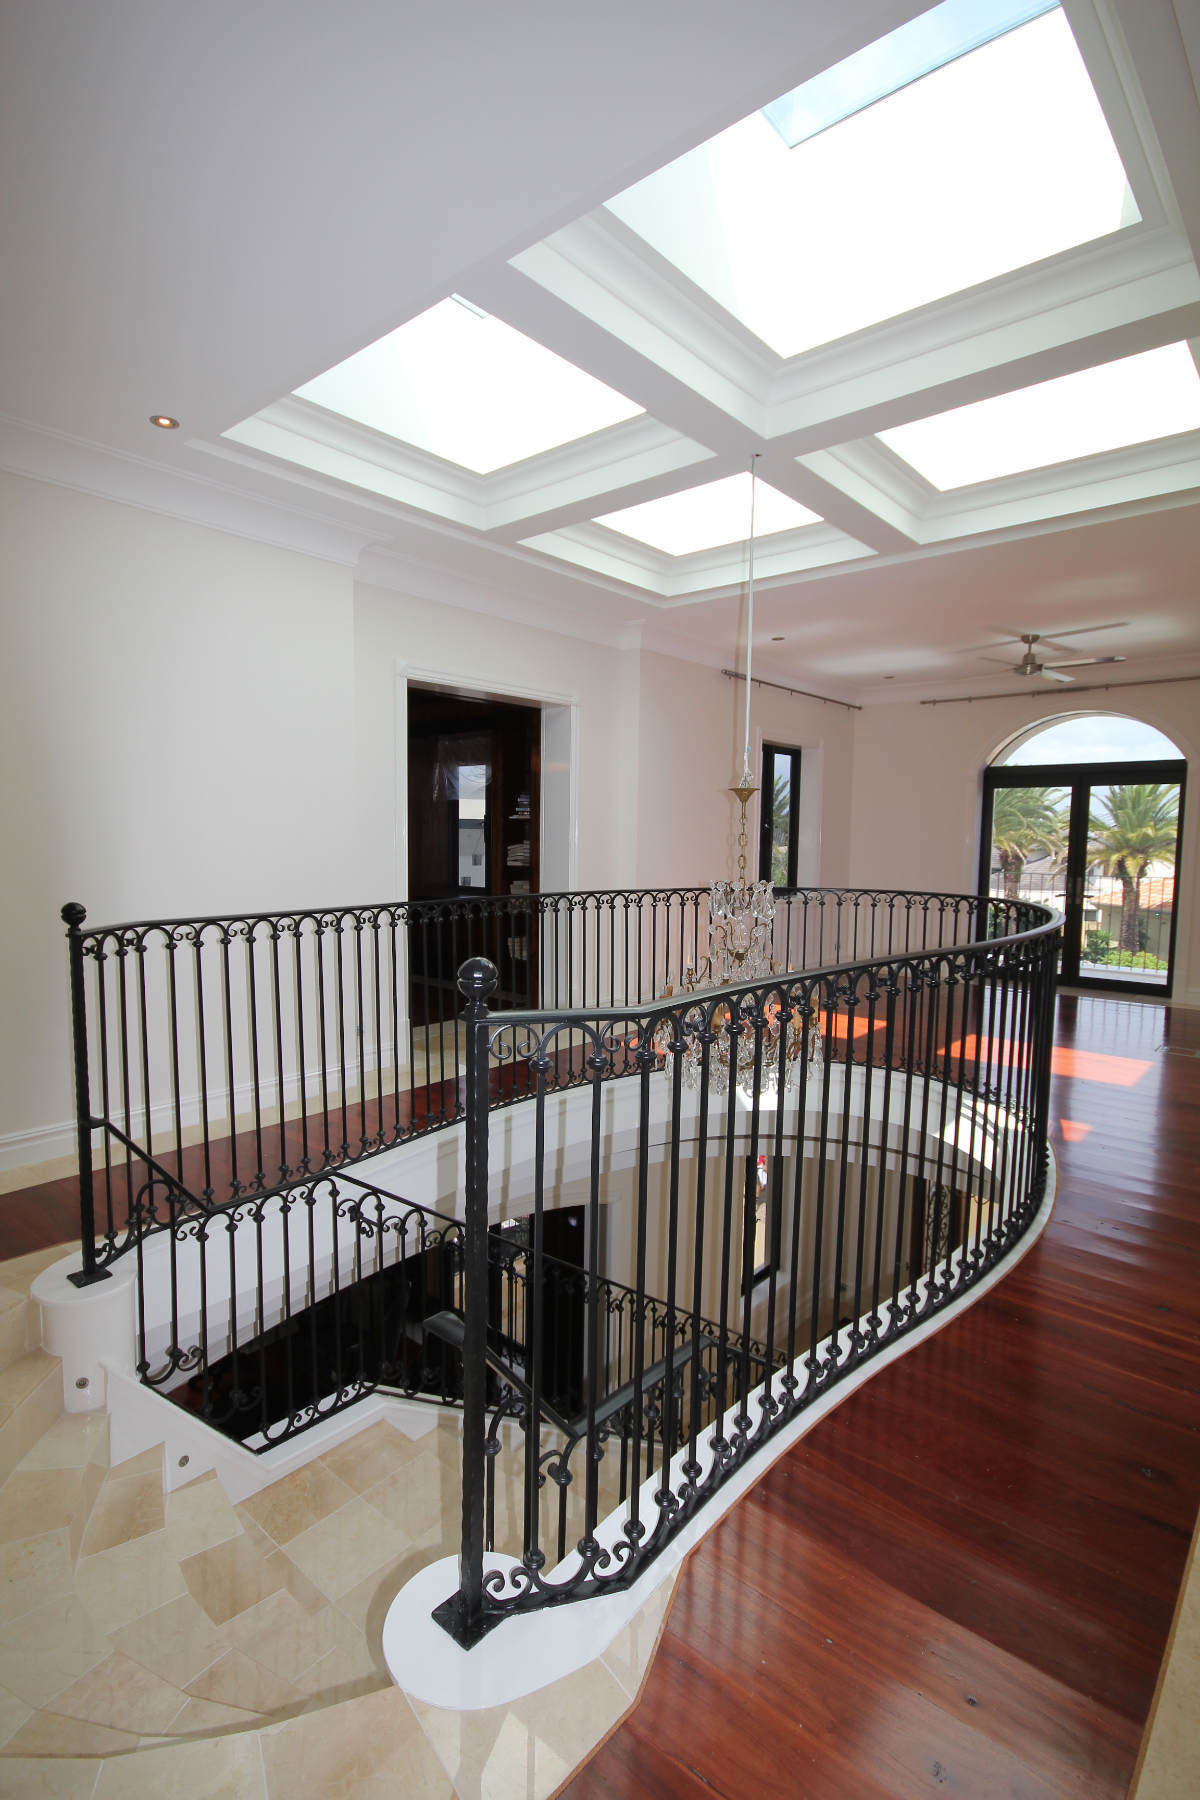 Stairs & Balustrading 1st Floor - 3.JPG